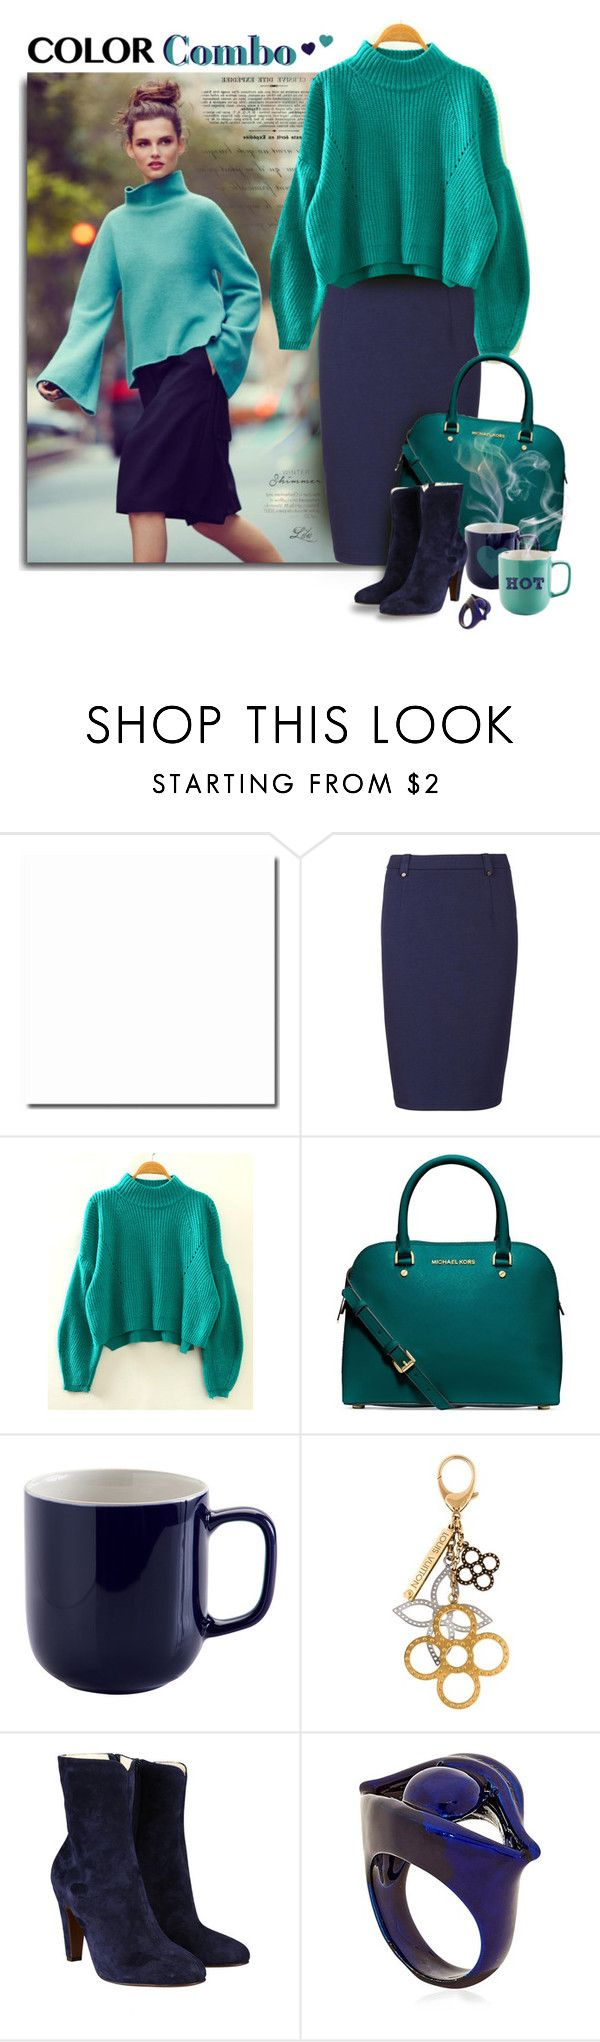 """Color Combo"" by fashion-architect-style ❤ liked on Polyvore featuring Sugarhill Boutique, Michael Kors, Louis Vuitton, L'Autre Chose and Virzi+De Luca"